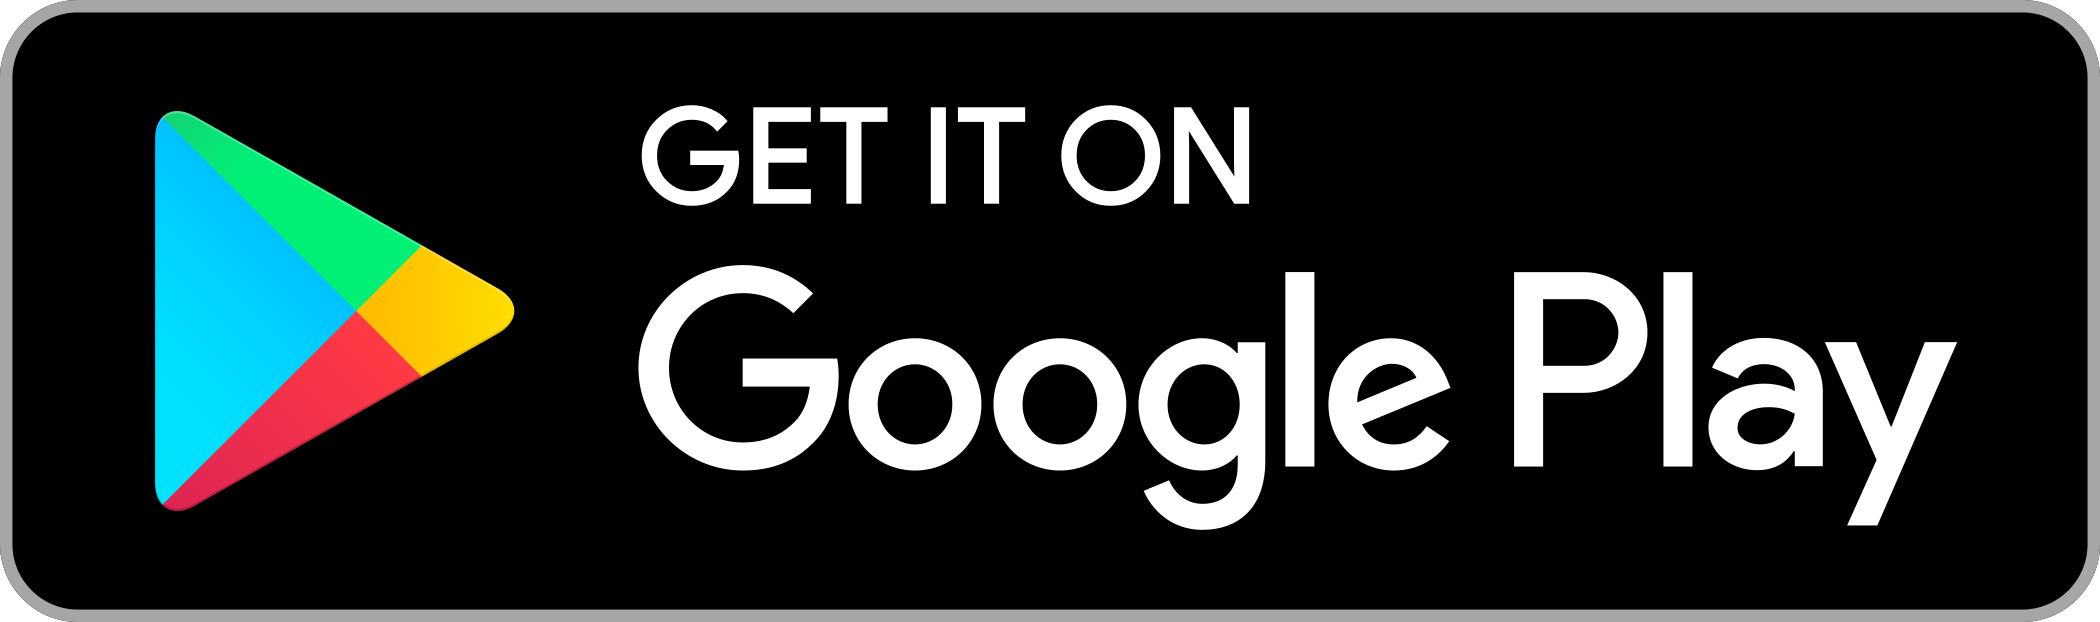 get it on google play badge 1 - Get it on Google Play Badge